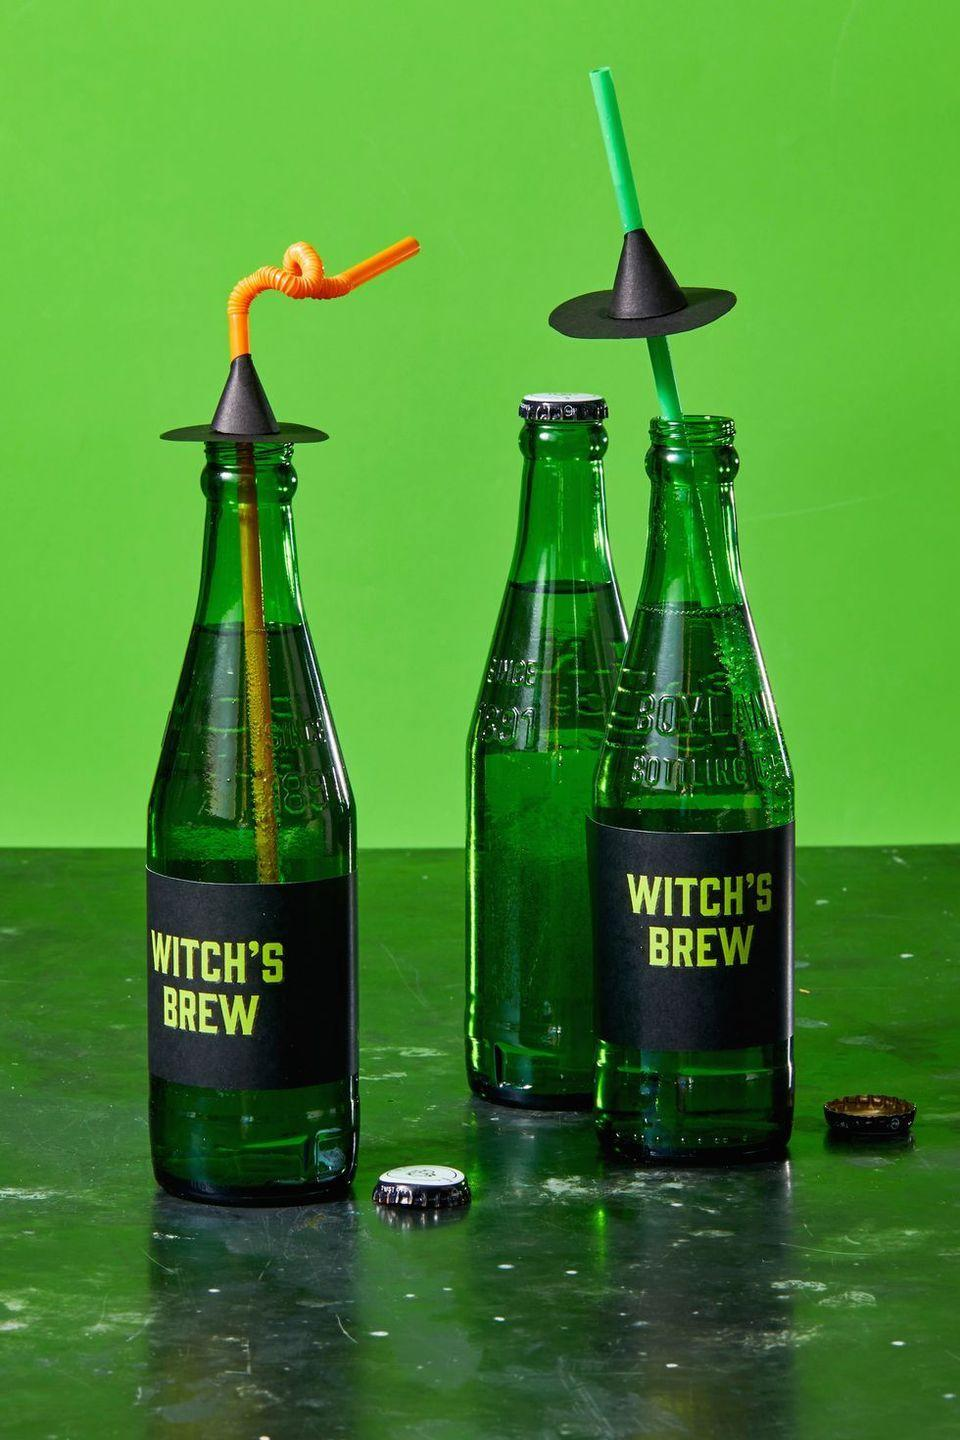 """<p>Make your soda or beer bottles fit for the party by taping our <strong><a href=""""https://hmg-prod.s3.amazonaws.com/files/ghkhalloween-witchesbrewwrappers-1564587124.pdf"""" rel=""""nofollow noopener"""" target=""""_blank"""" data-ylk=""""slk:Witch's Brew bottle wrap template"""" class=""""link rapid-noclick-resp"""">Witch's Brew bottle wrap template</a> </strong>around the center of the bottle. If you want to go the extra mile, DIY witch hat straws: To make, cut two 3"""" circles out of black paper and punch a hole in the center of one. Slide a straw through the hole. Cut the other circle in half and roll to create a cone around the straw, glueing or taping in place. Glue or tape the cone to the paper circle to make it look like a witch hat.</p><p><strong>RELATED: </strong><a href=""""https://www.goodhousekeeping.com/holidays/halloween-ideas/g565/halloween-party-ideas/?"""" rel=""""nofollow noopener"""" target=""""_blank"""" data-ylk=""""slk:Ideas for the Best Halloween Party Ever"""" class=""""link rapid-noclick-resp"""">Ideas for the Best Halloween Party Ever </a></p>"""